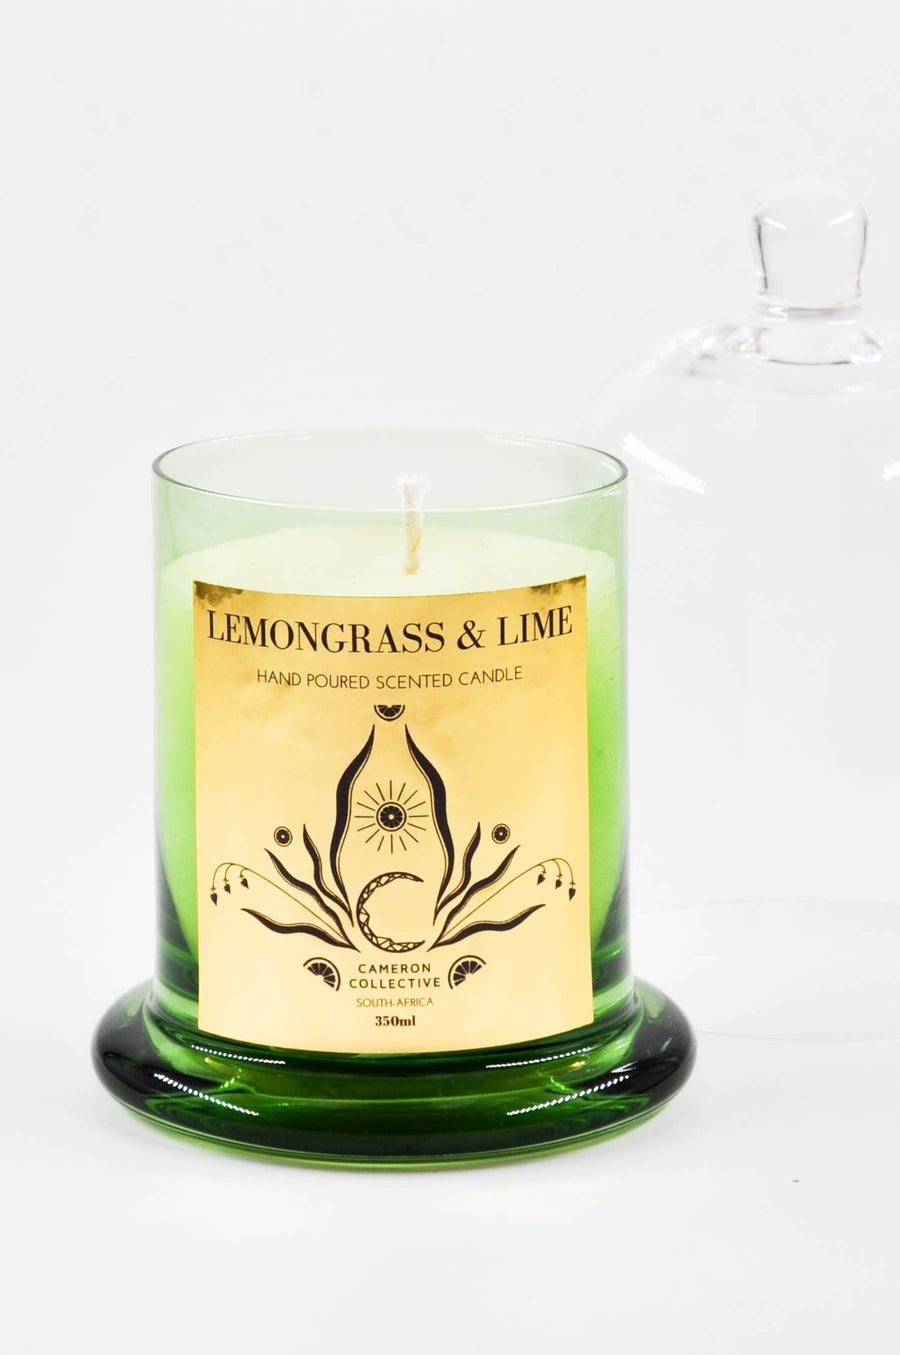 Lemongrass and lime scented candle dome